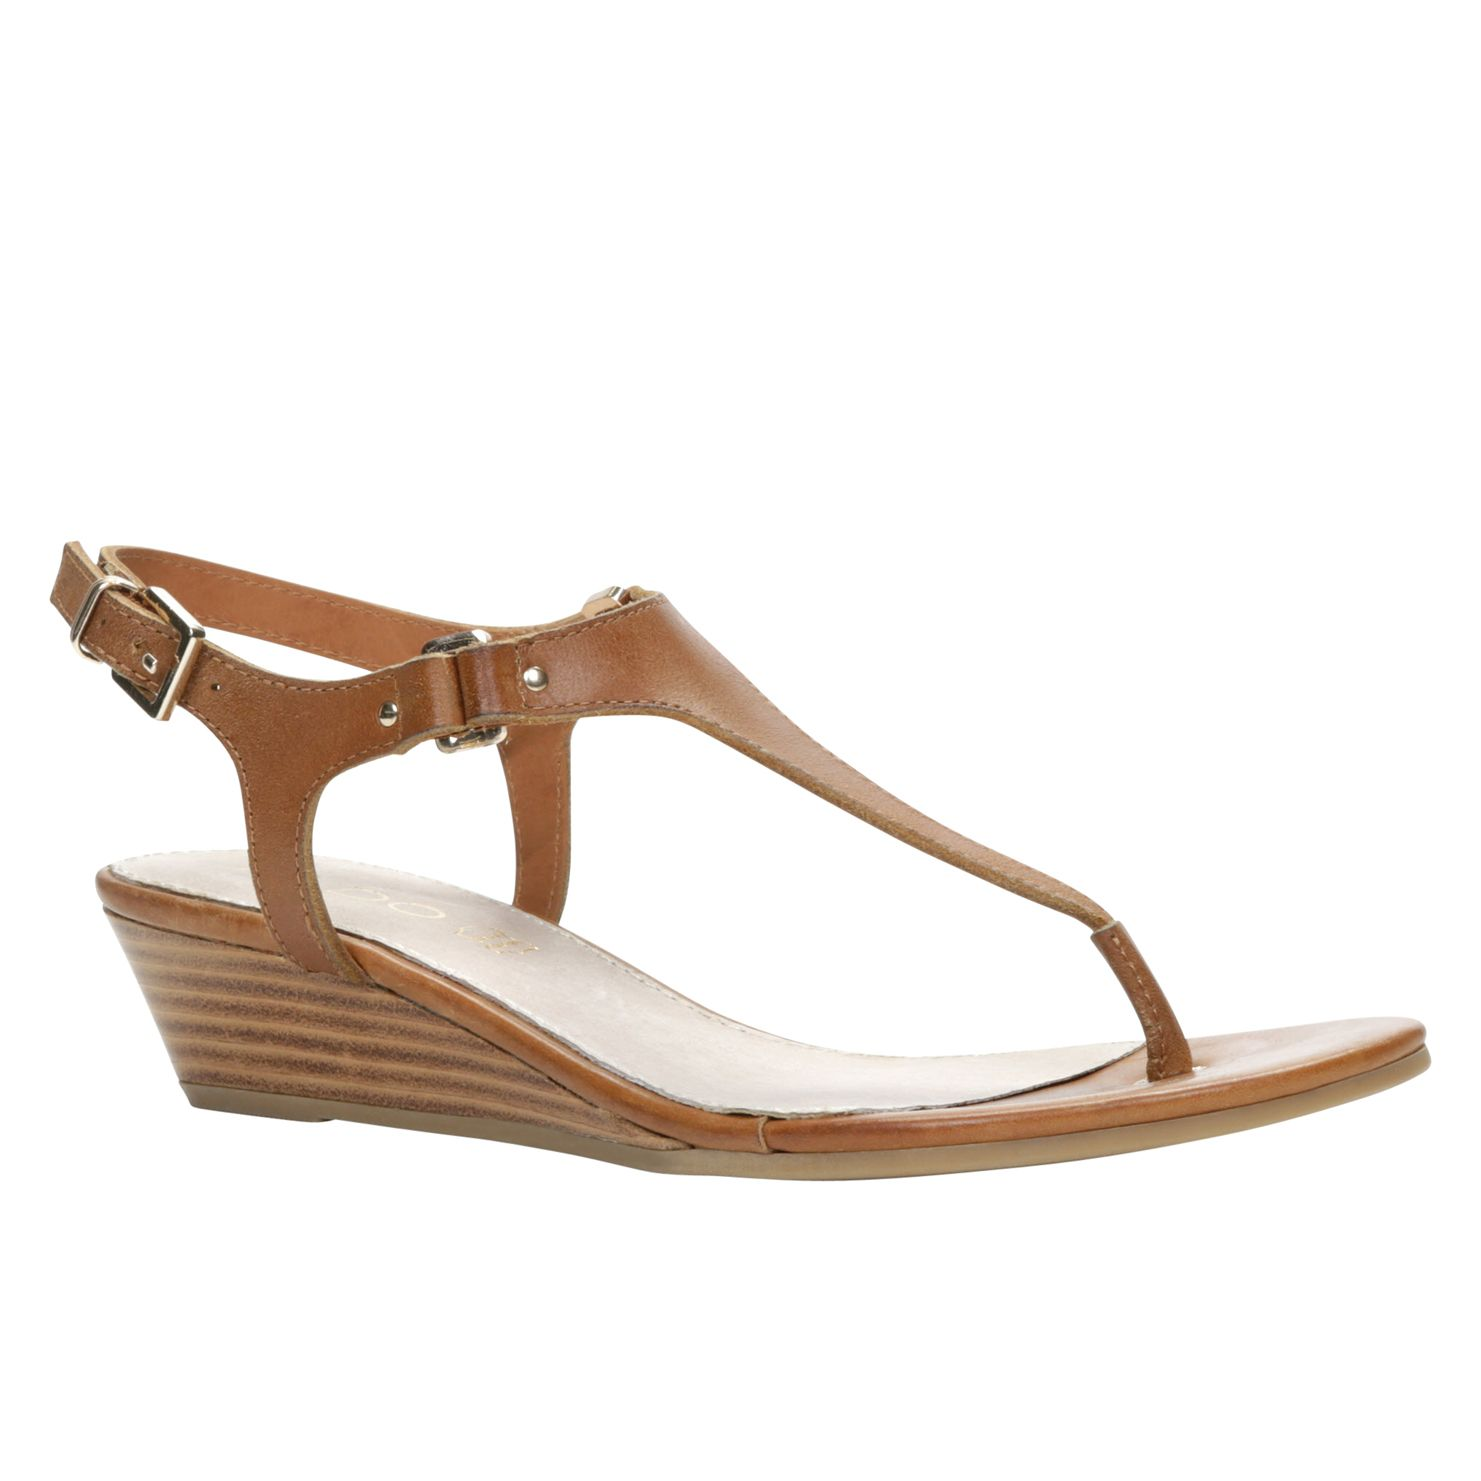 Eriradda t-strap wedge sandals